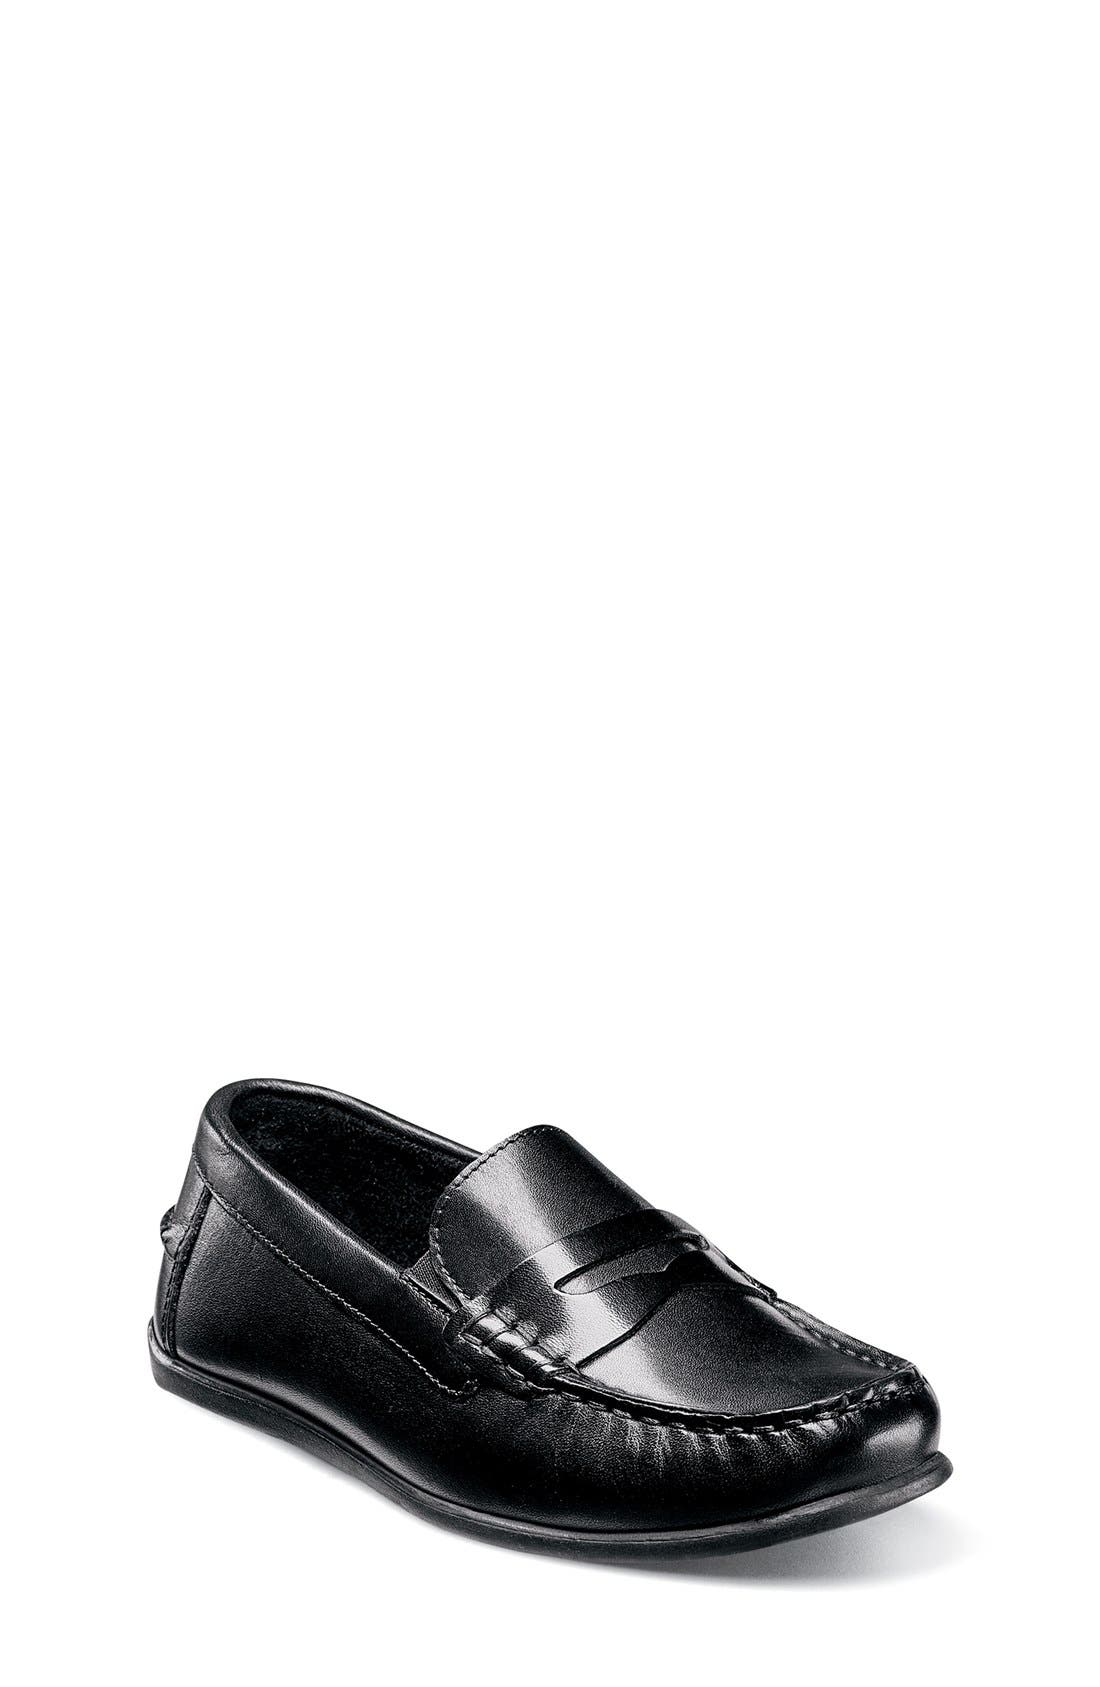 'Jasper - Driver Jr.' Loafer,                             Main thumbnail 1, color,                             BLACK LEATHER